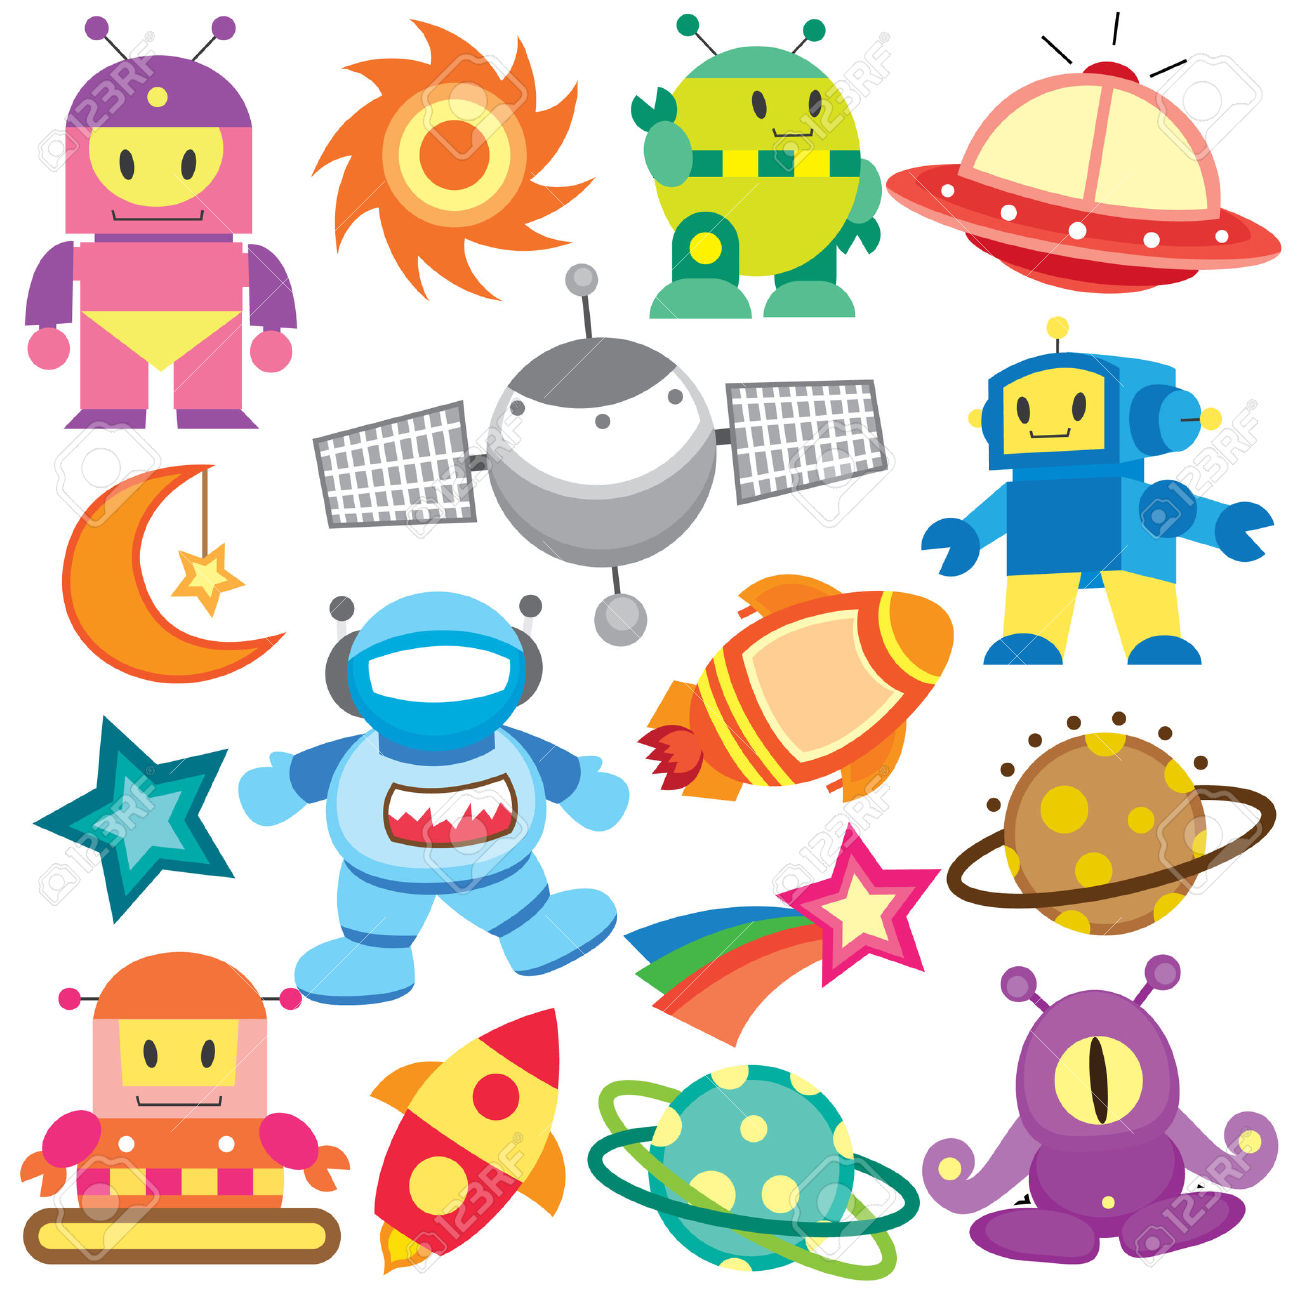 Outer Space Clipart - Blogsbeta-Outer Space Clipart - Blogsbeta-14